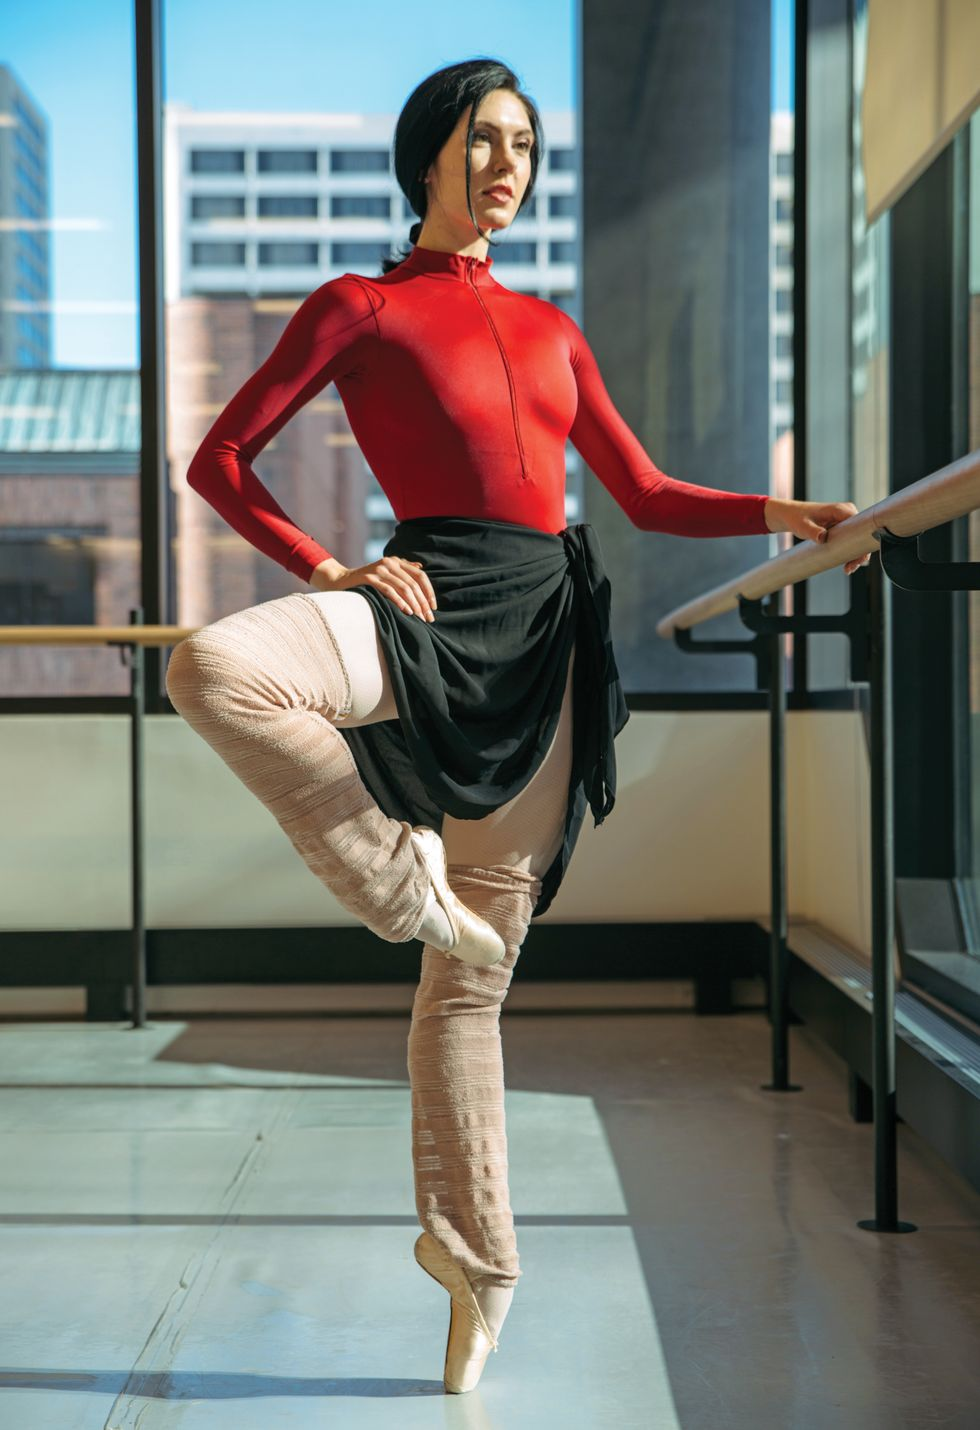 Sisk, dressed in a red leotard and black skirt and legwarmers, stands in a pass\u00e9 on pointe with one hand on the barre.